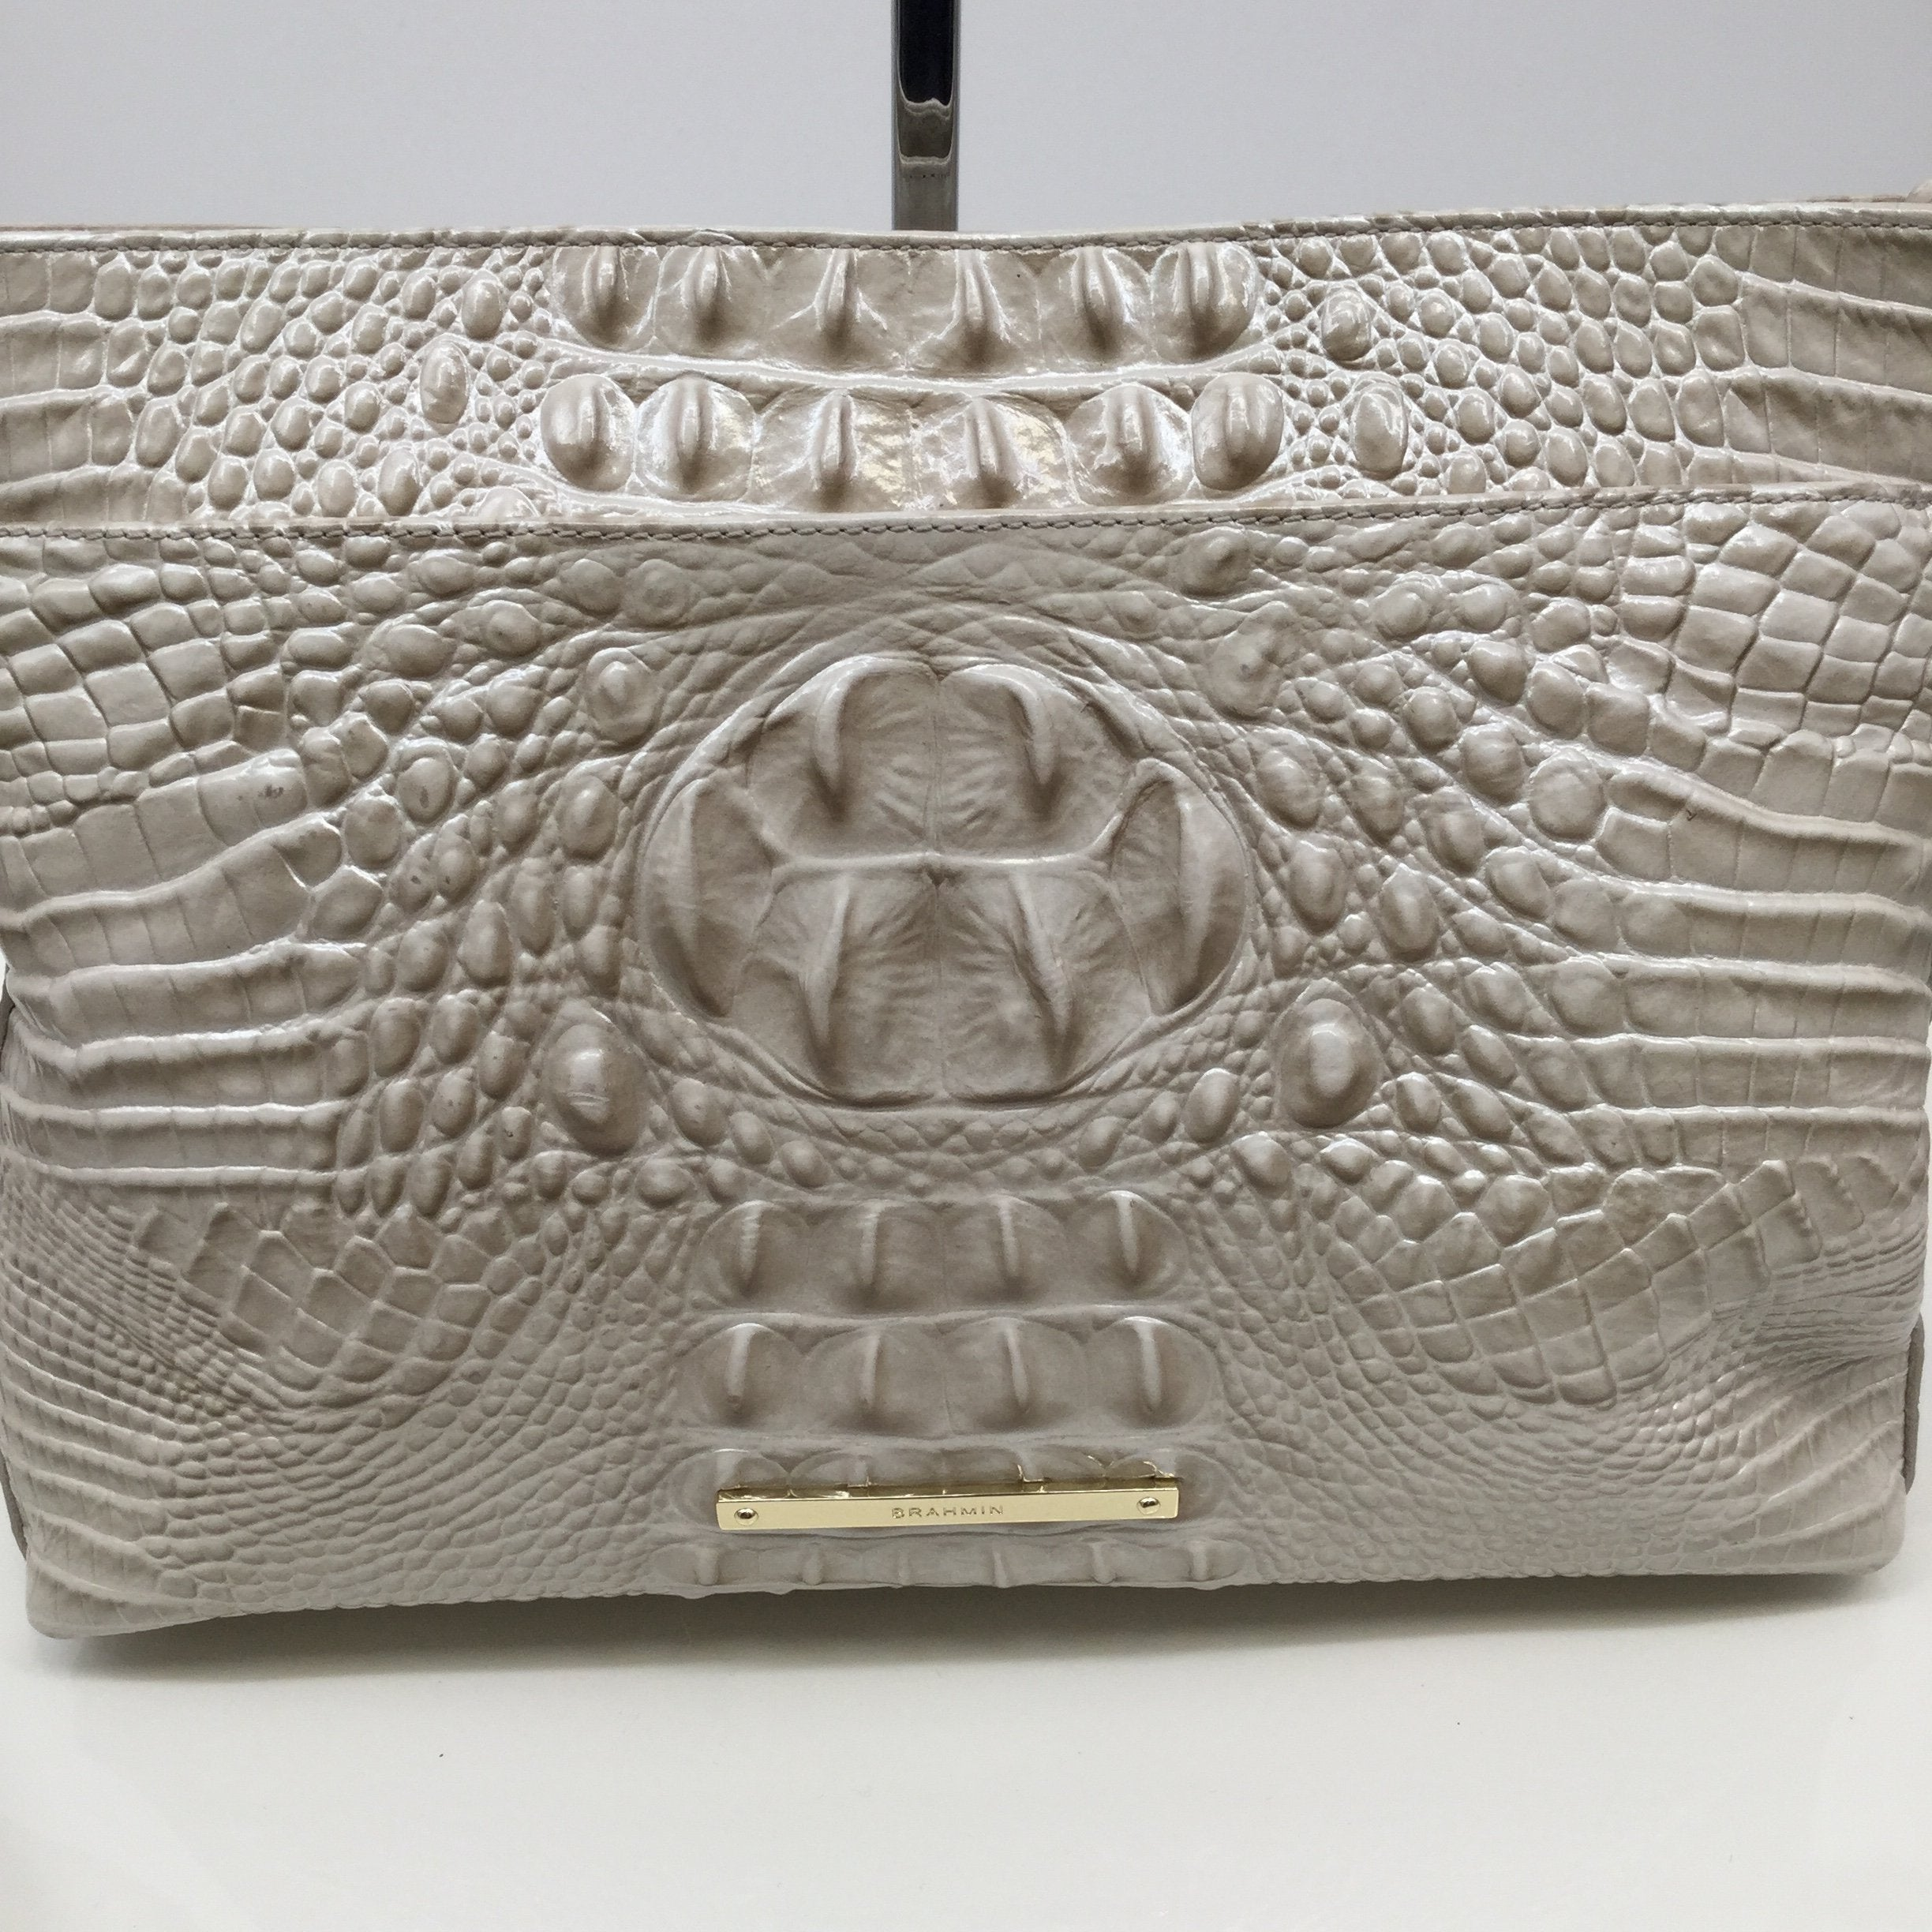 Brahmin Cream Crocodile Print Designer Handbag  - <P>KEEP IT COOL WITH THIS CREAM COLORED CROCODILE PRINTED DESIGNER HANDBAG BY BRAHMIN. LIKE NEW CONDITION INSIDE AND OUT. MARK ON THE OUTSIDE OF THE BAG THAT IS PICTURED, DOES BLEND WITH THE BAG. MEASURES 9 INCHES HIGH AND 12 INCHES WIDE. HAVE THIS DESIGNER HANDBAG FOR ONLY $95.</P>